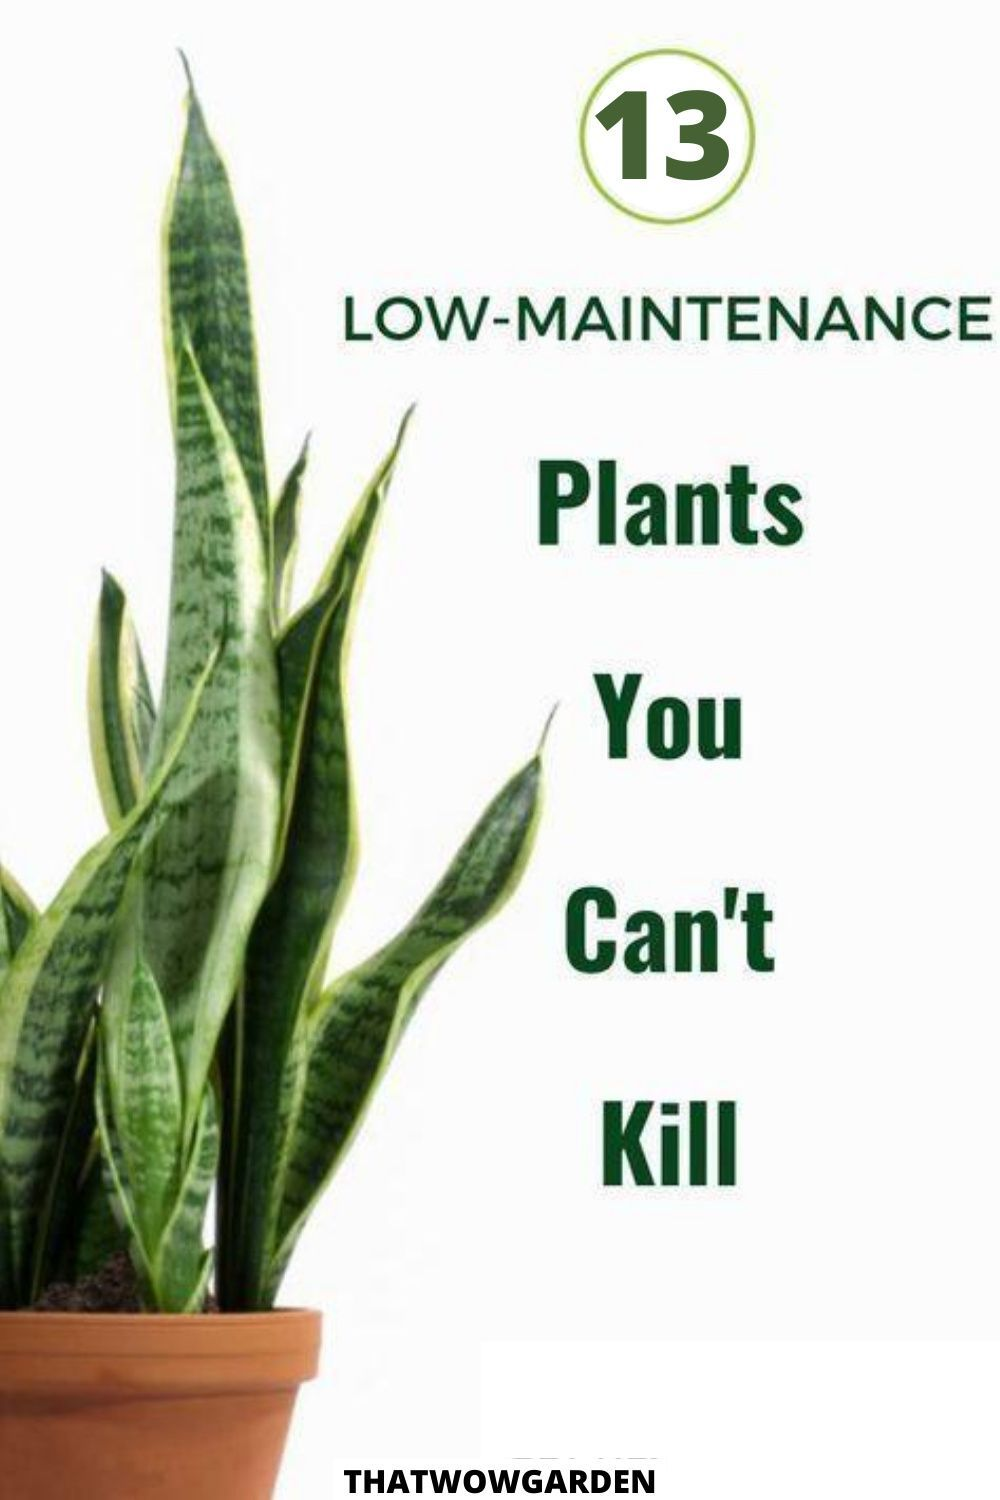 13 low maintenance plants that anyone can care for. If you are a beginner gardener, then these low maintenance plants will be amazing for you to begin with. These are beautiful and easy to care for plants. #lowmaintenanceplants #easytocare #beginnerplants